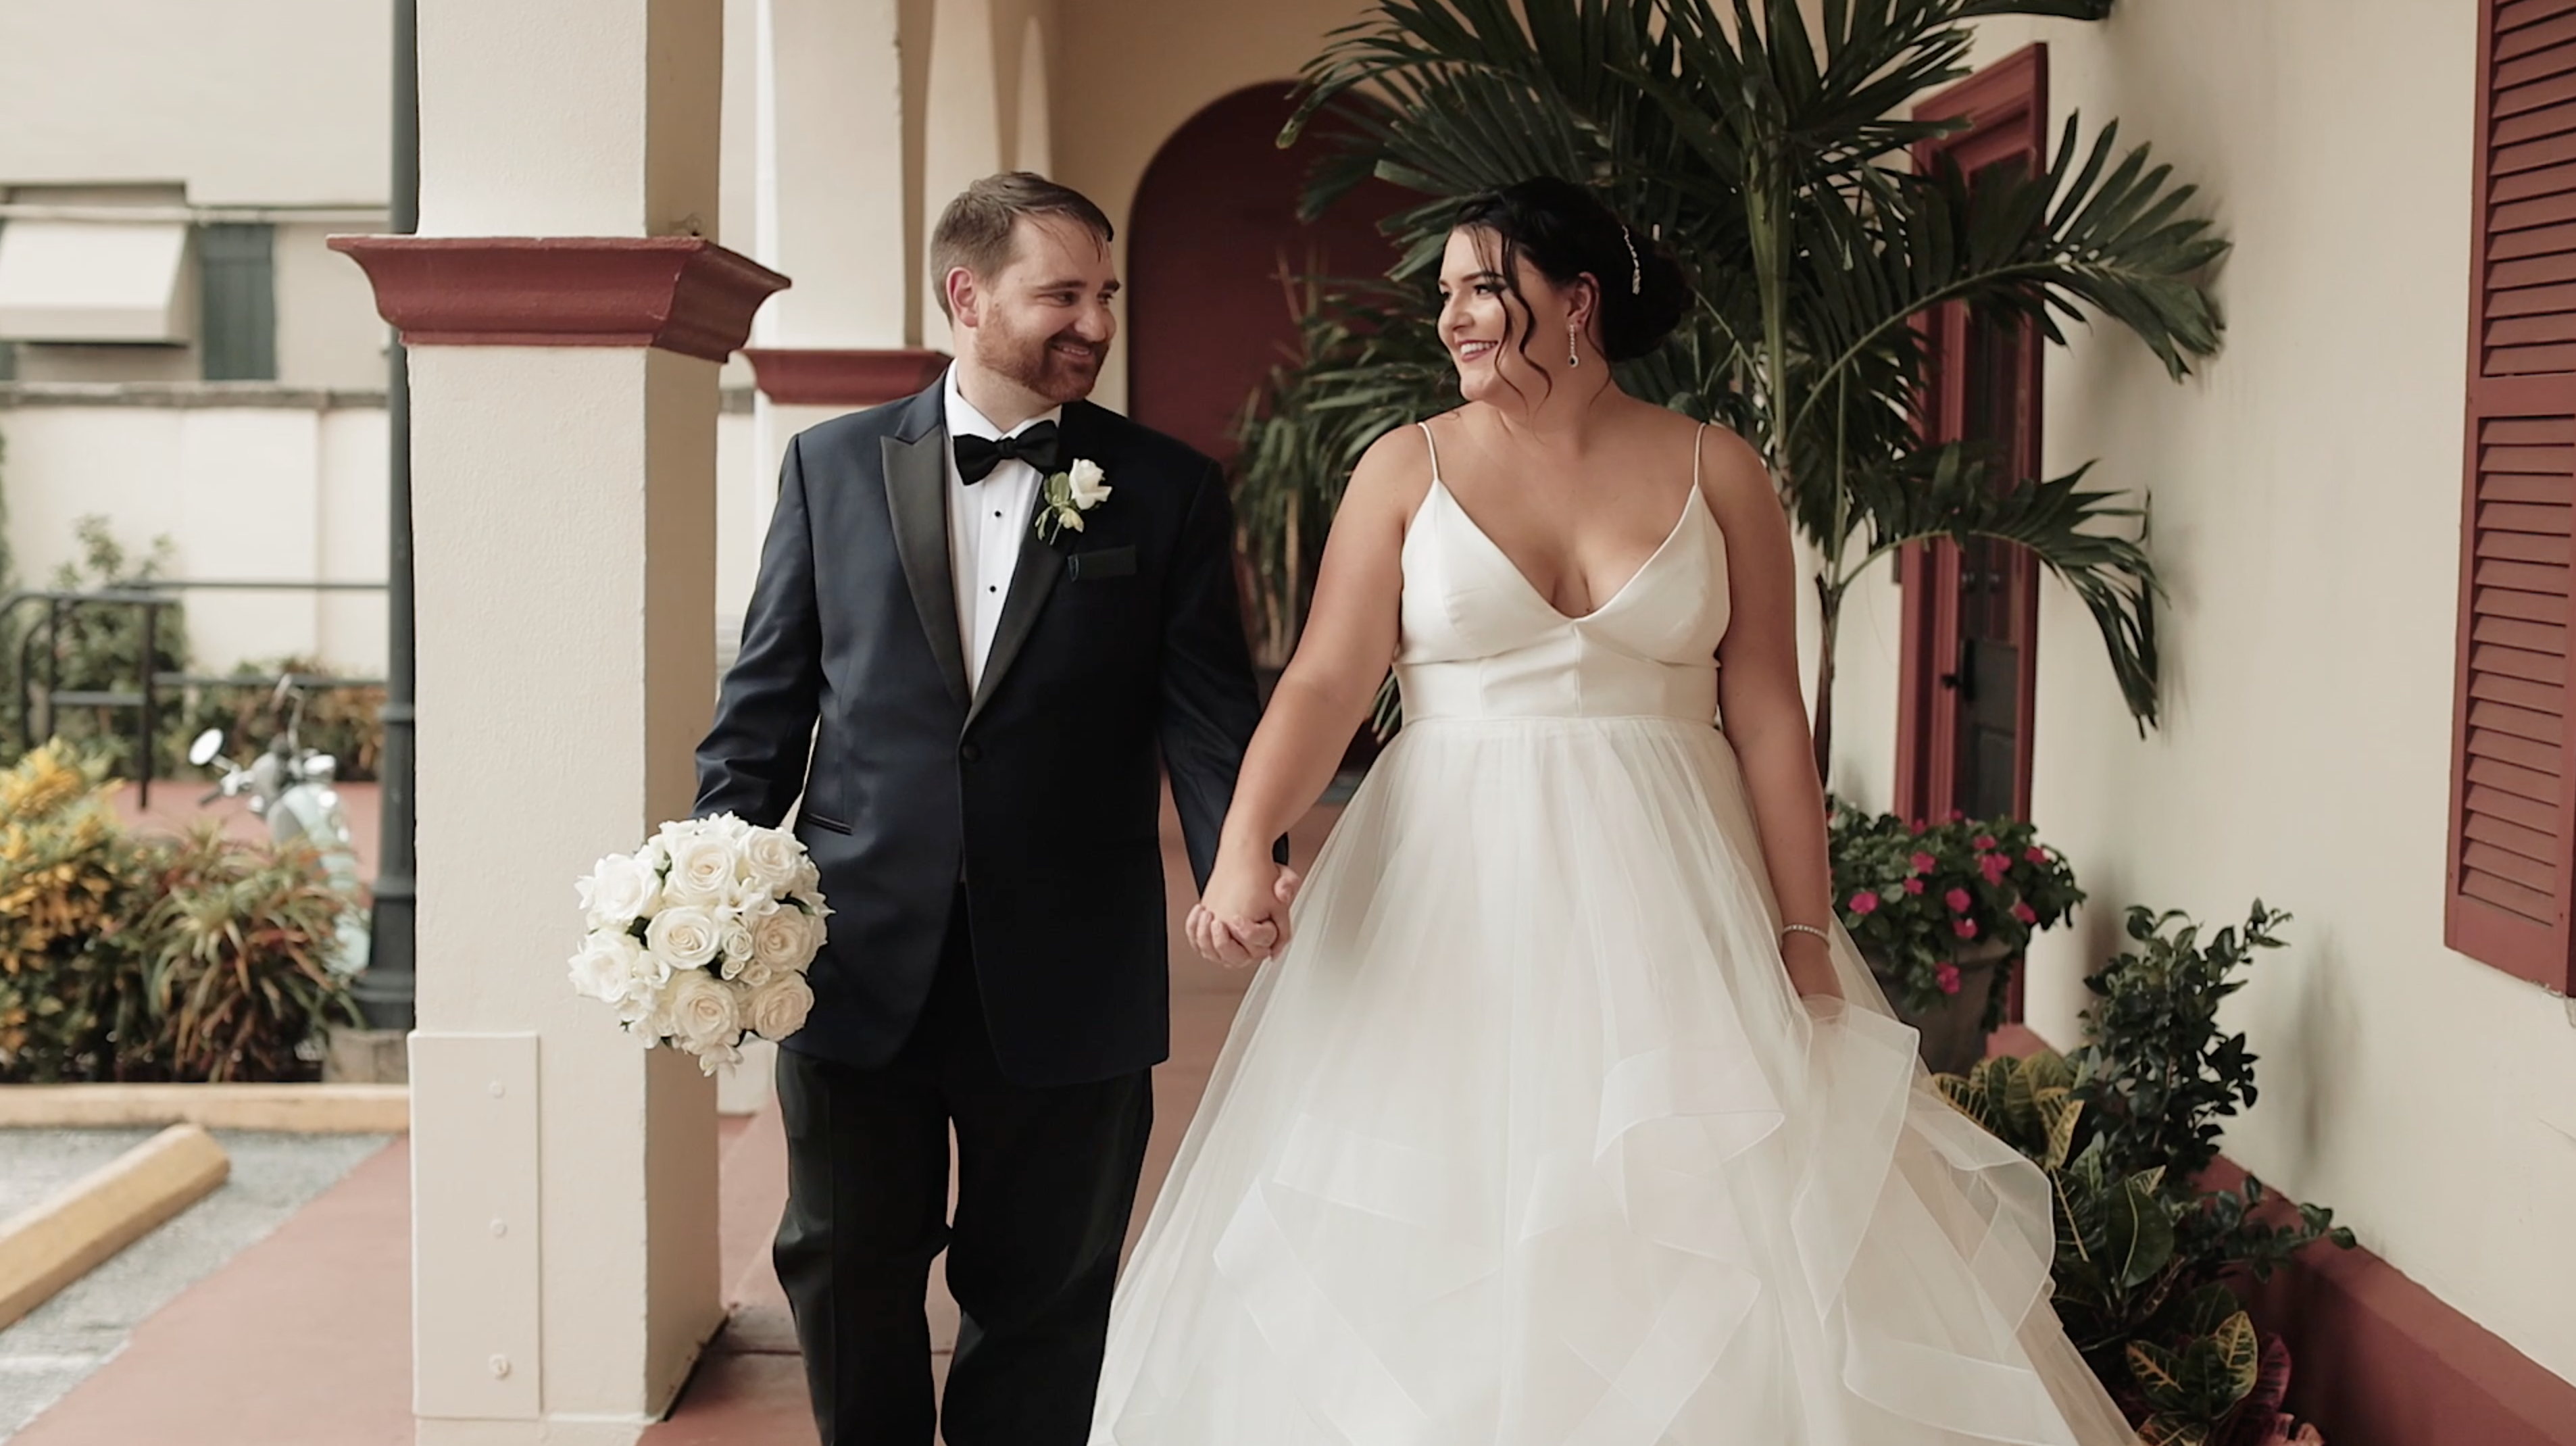 Madi + John | St. Augustine, Florida | Treasury on the Plaza